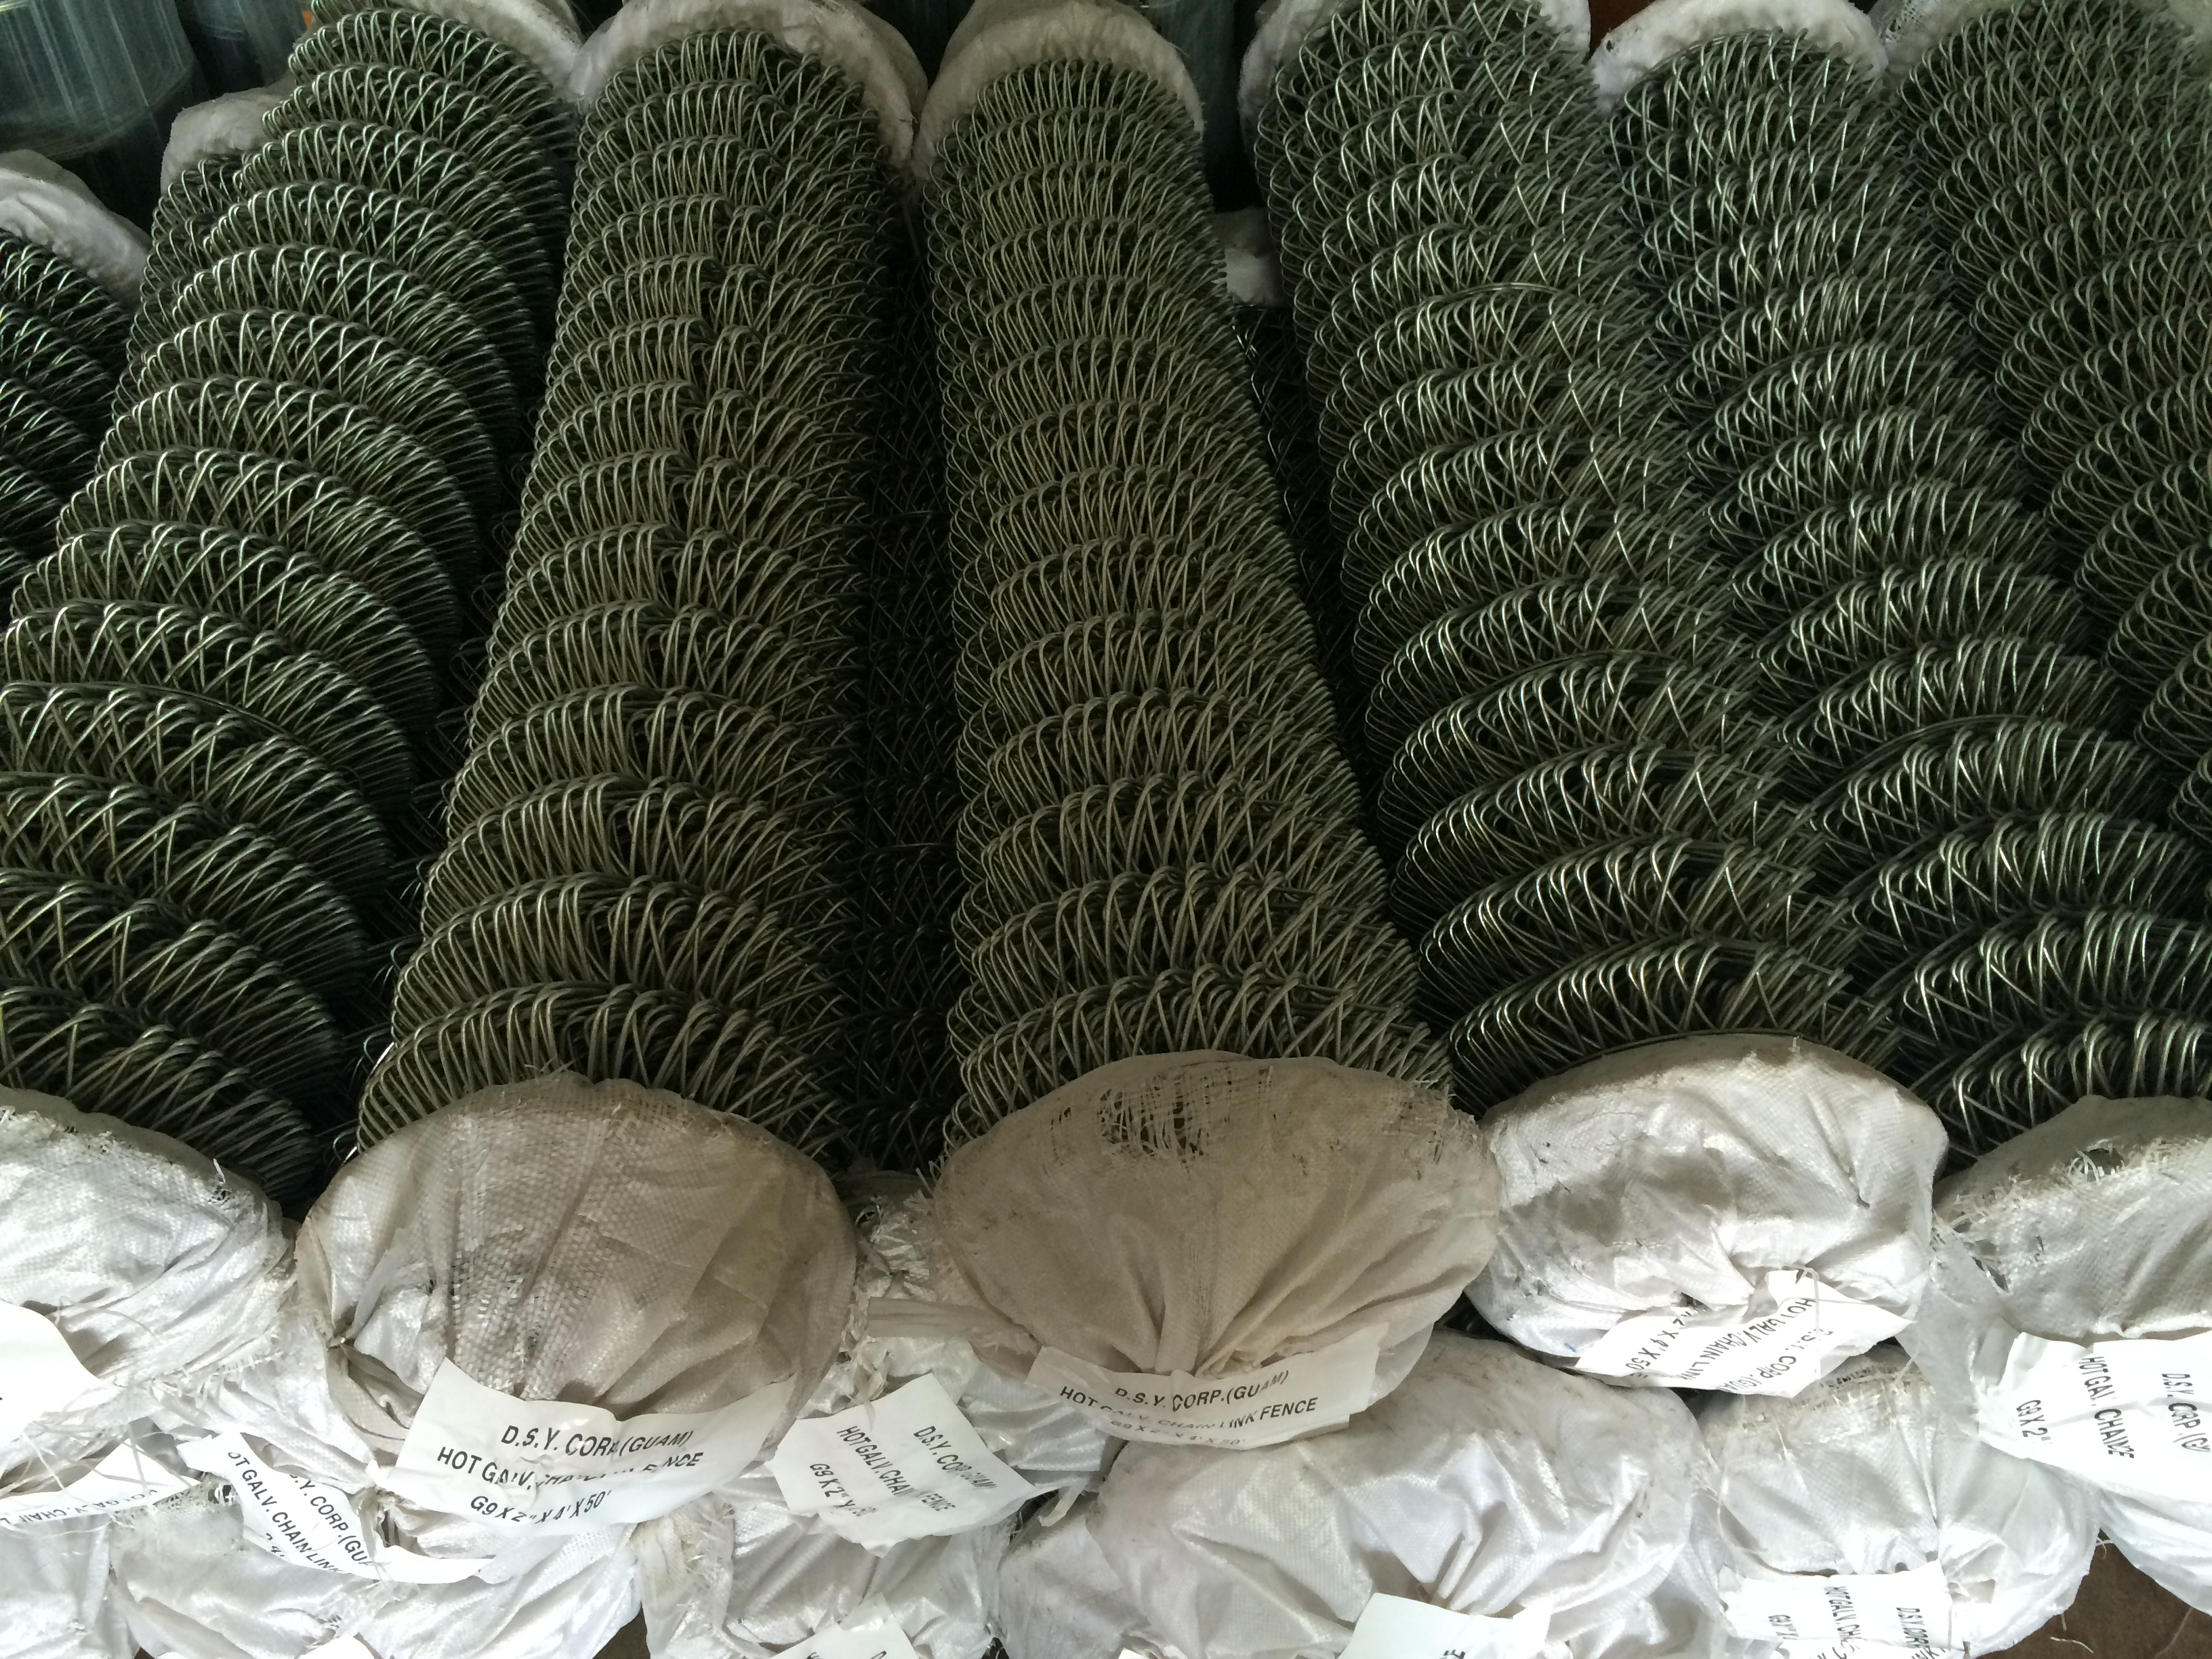 packing of galvanized wire chain link fence